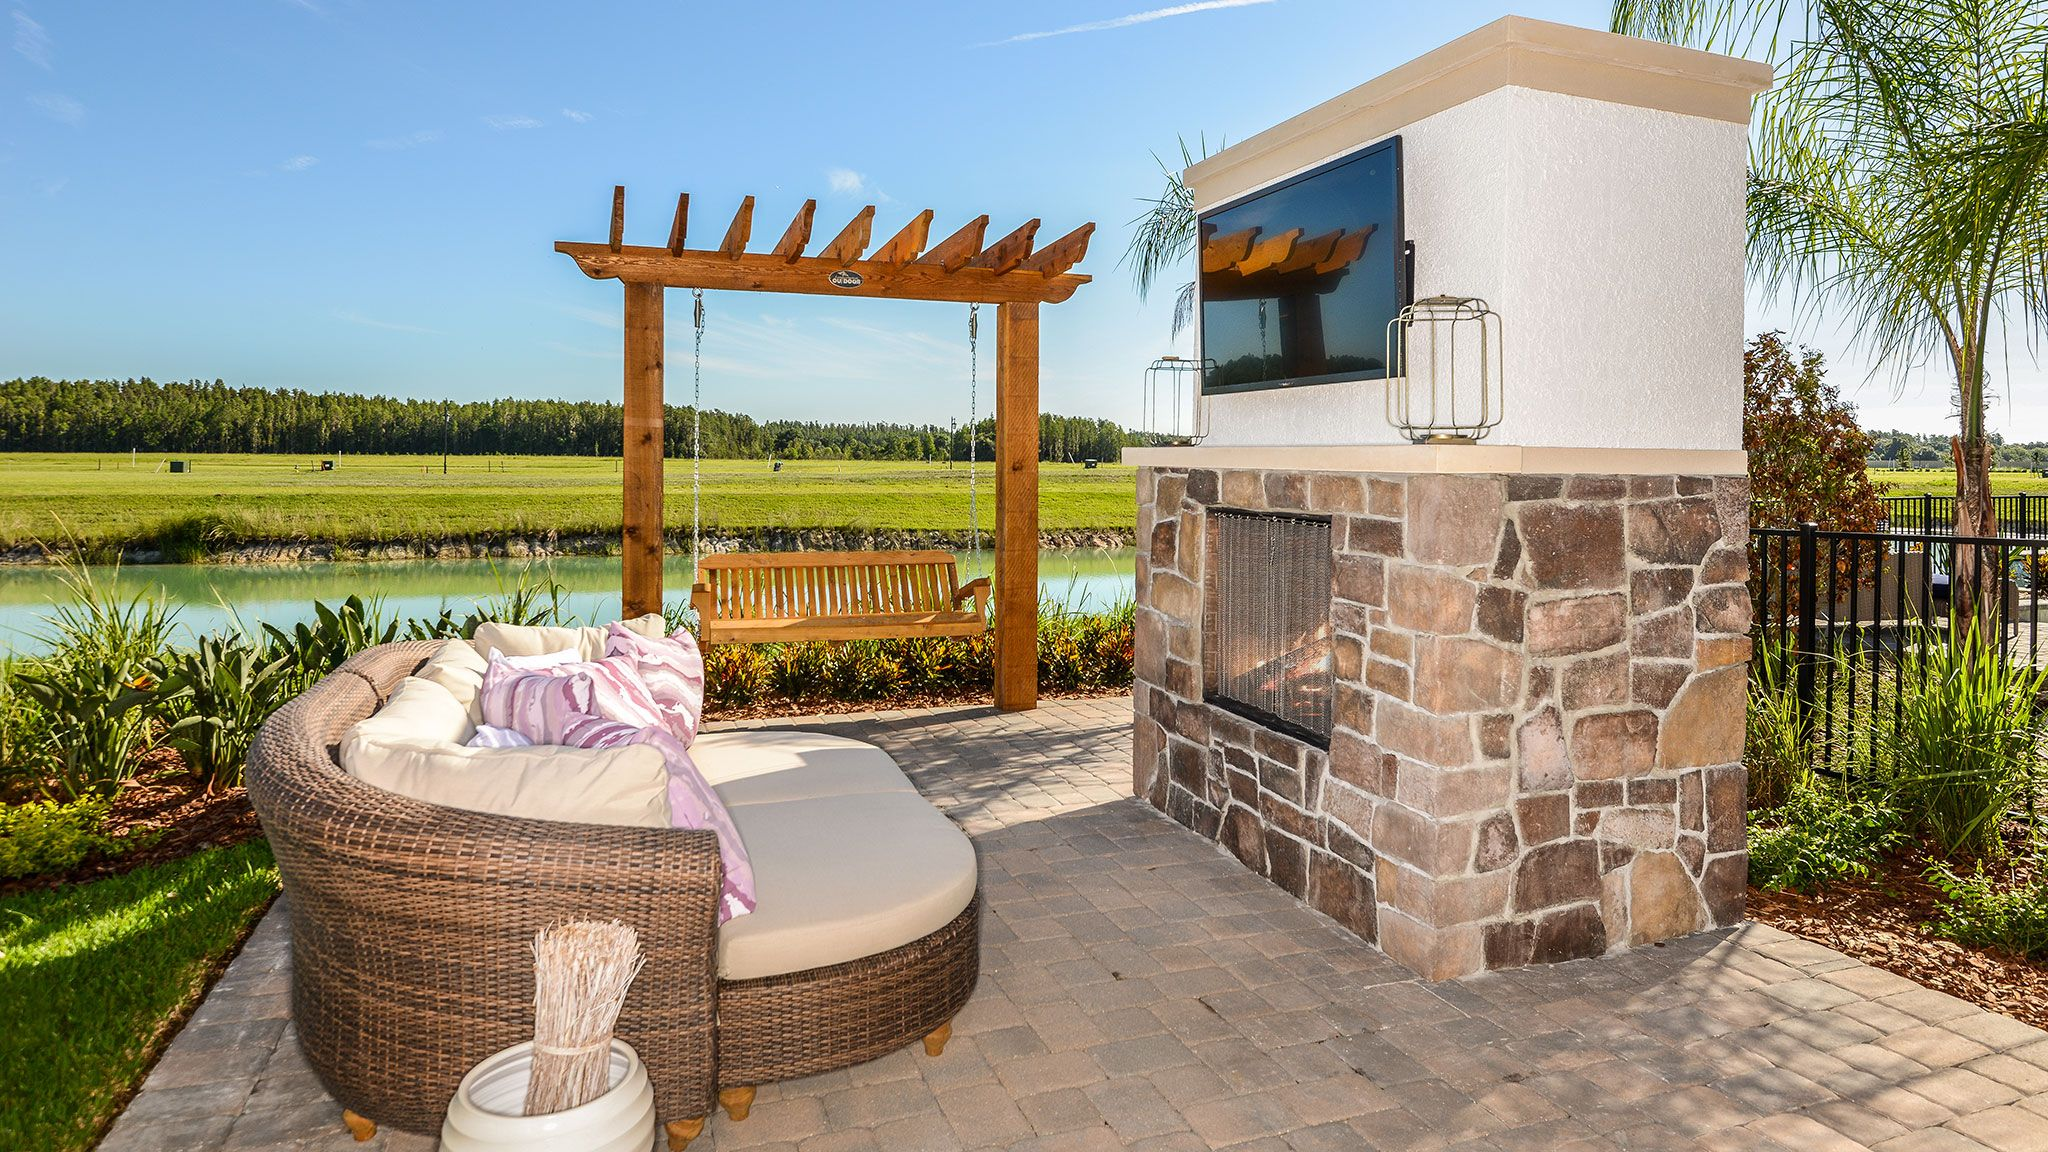 Would You Enjoy Unwinding On This Patio Bays Outdoor Living Life